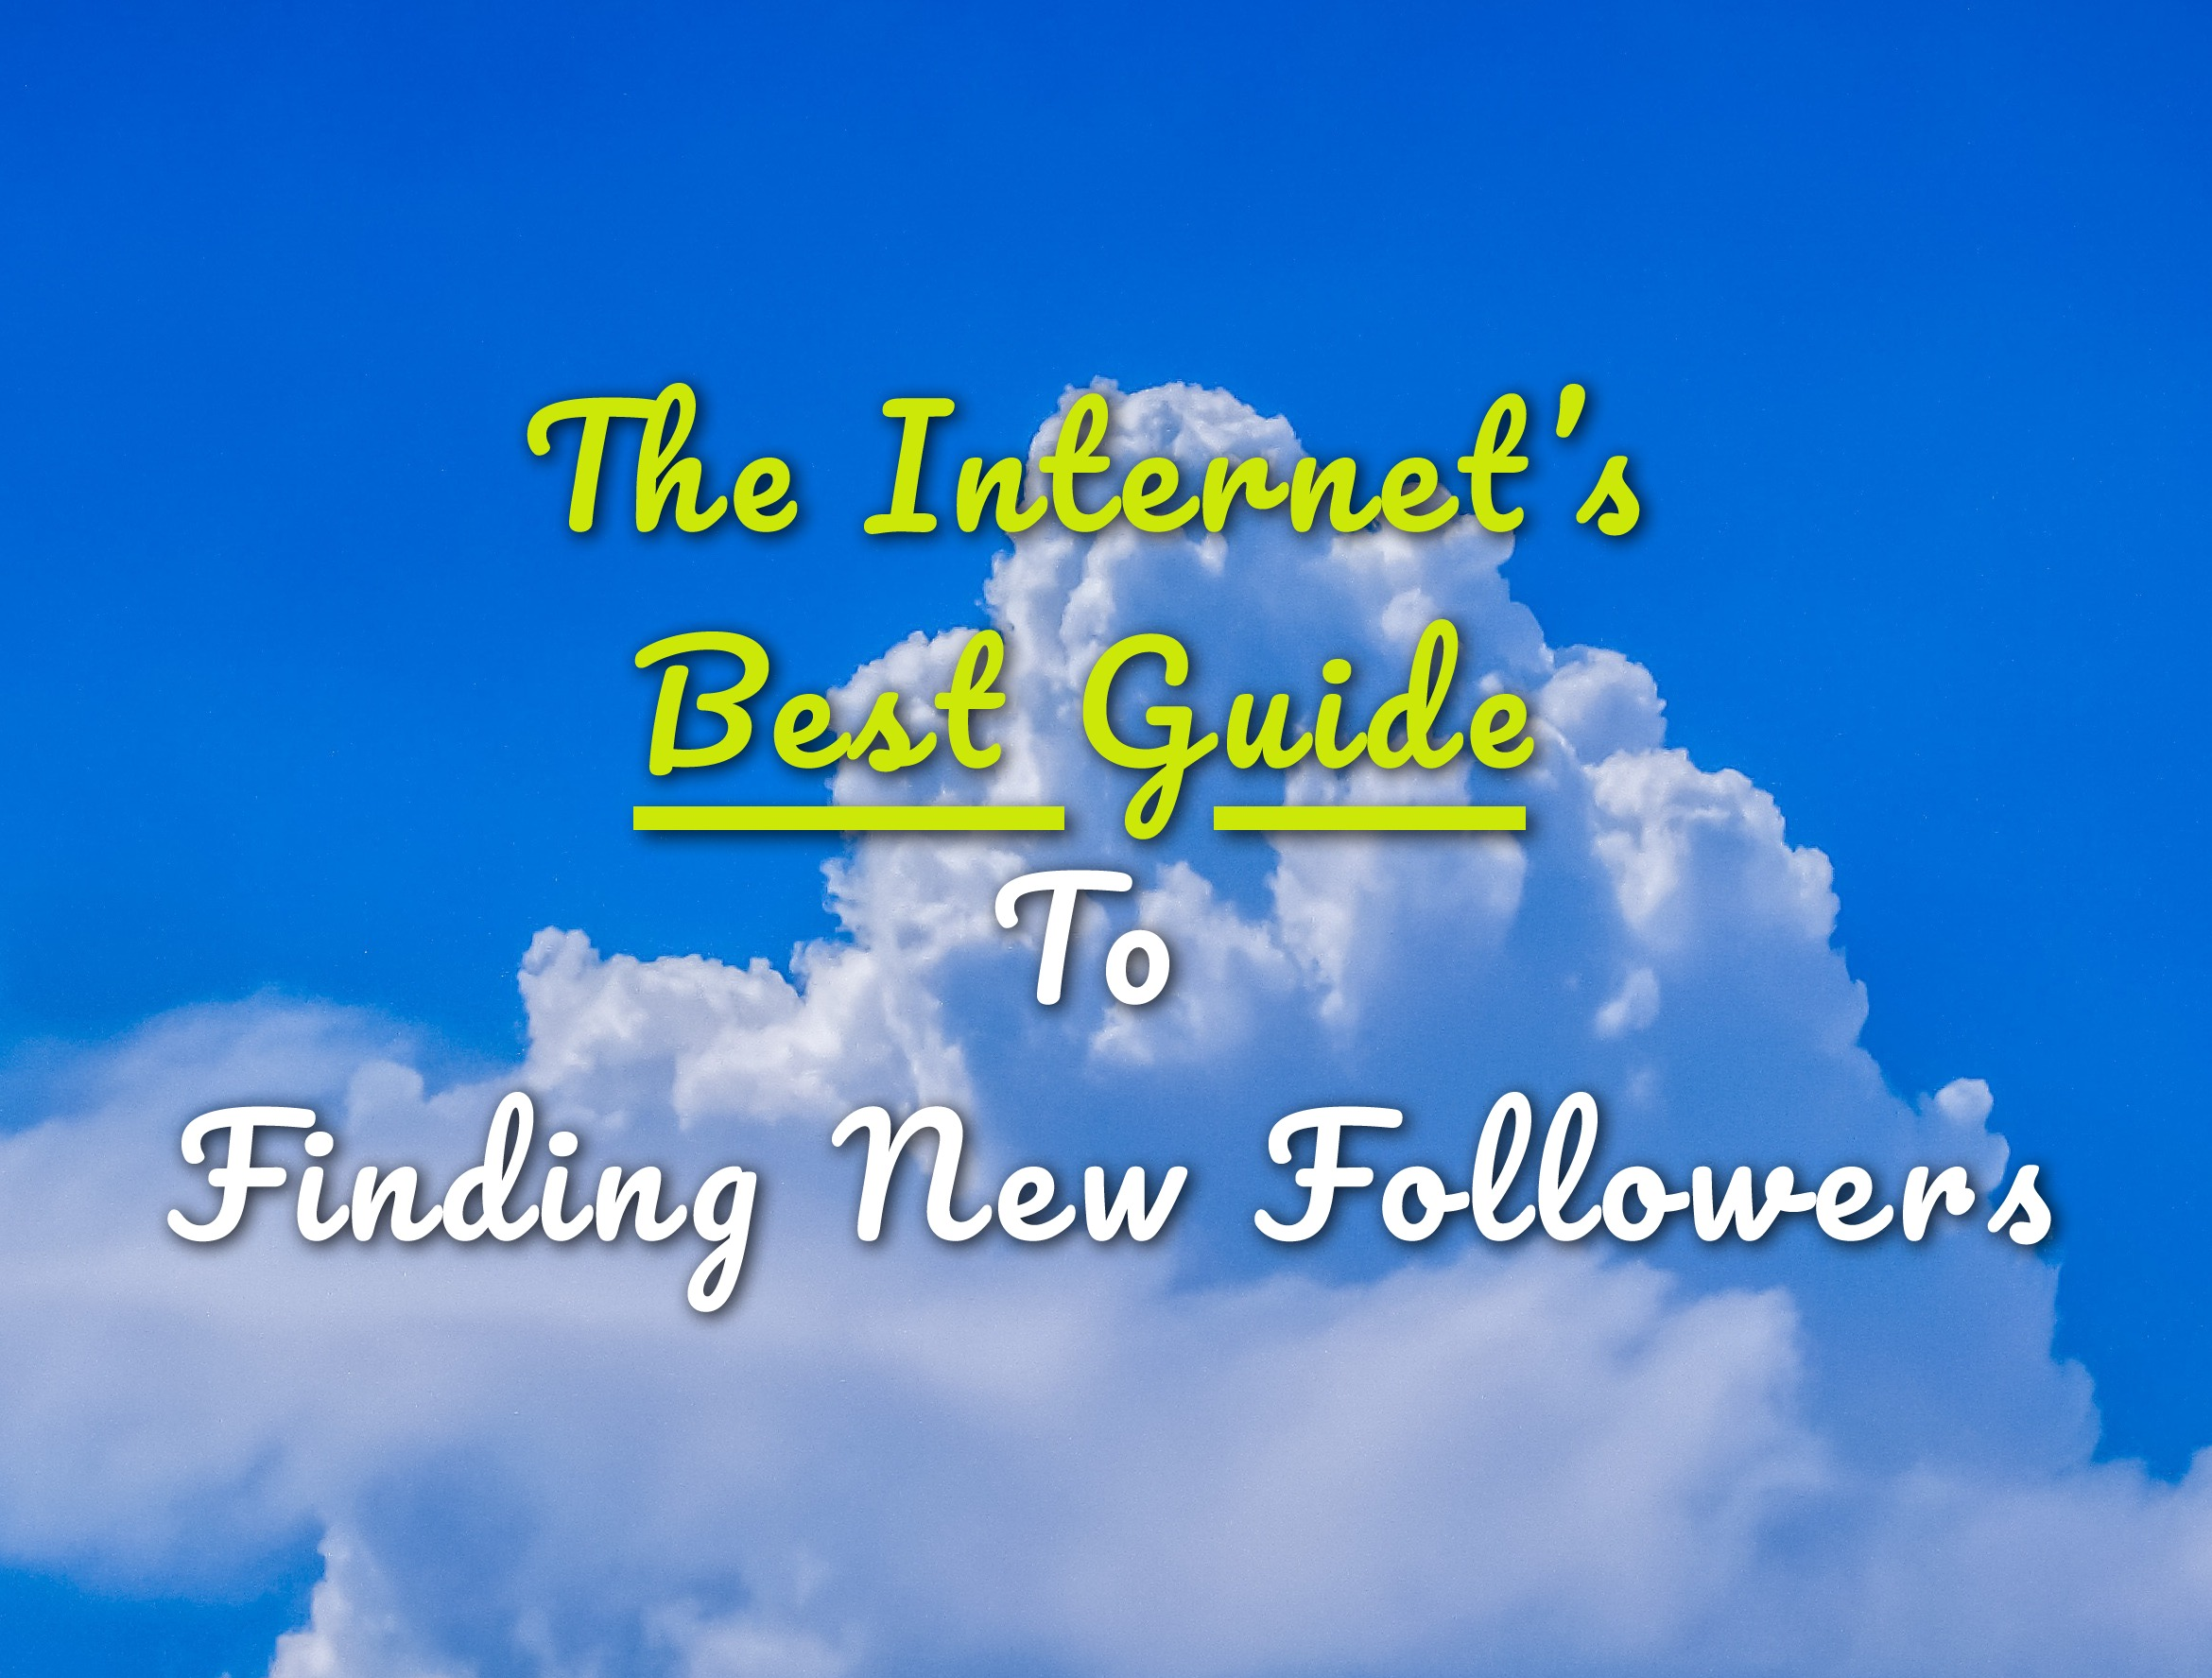 The Internet's Best Guide To Finding New Followers - By Sky Alphabet